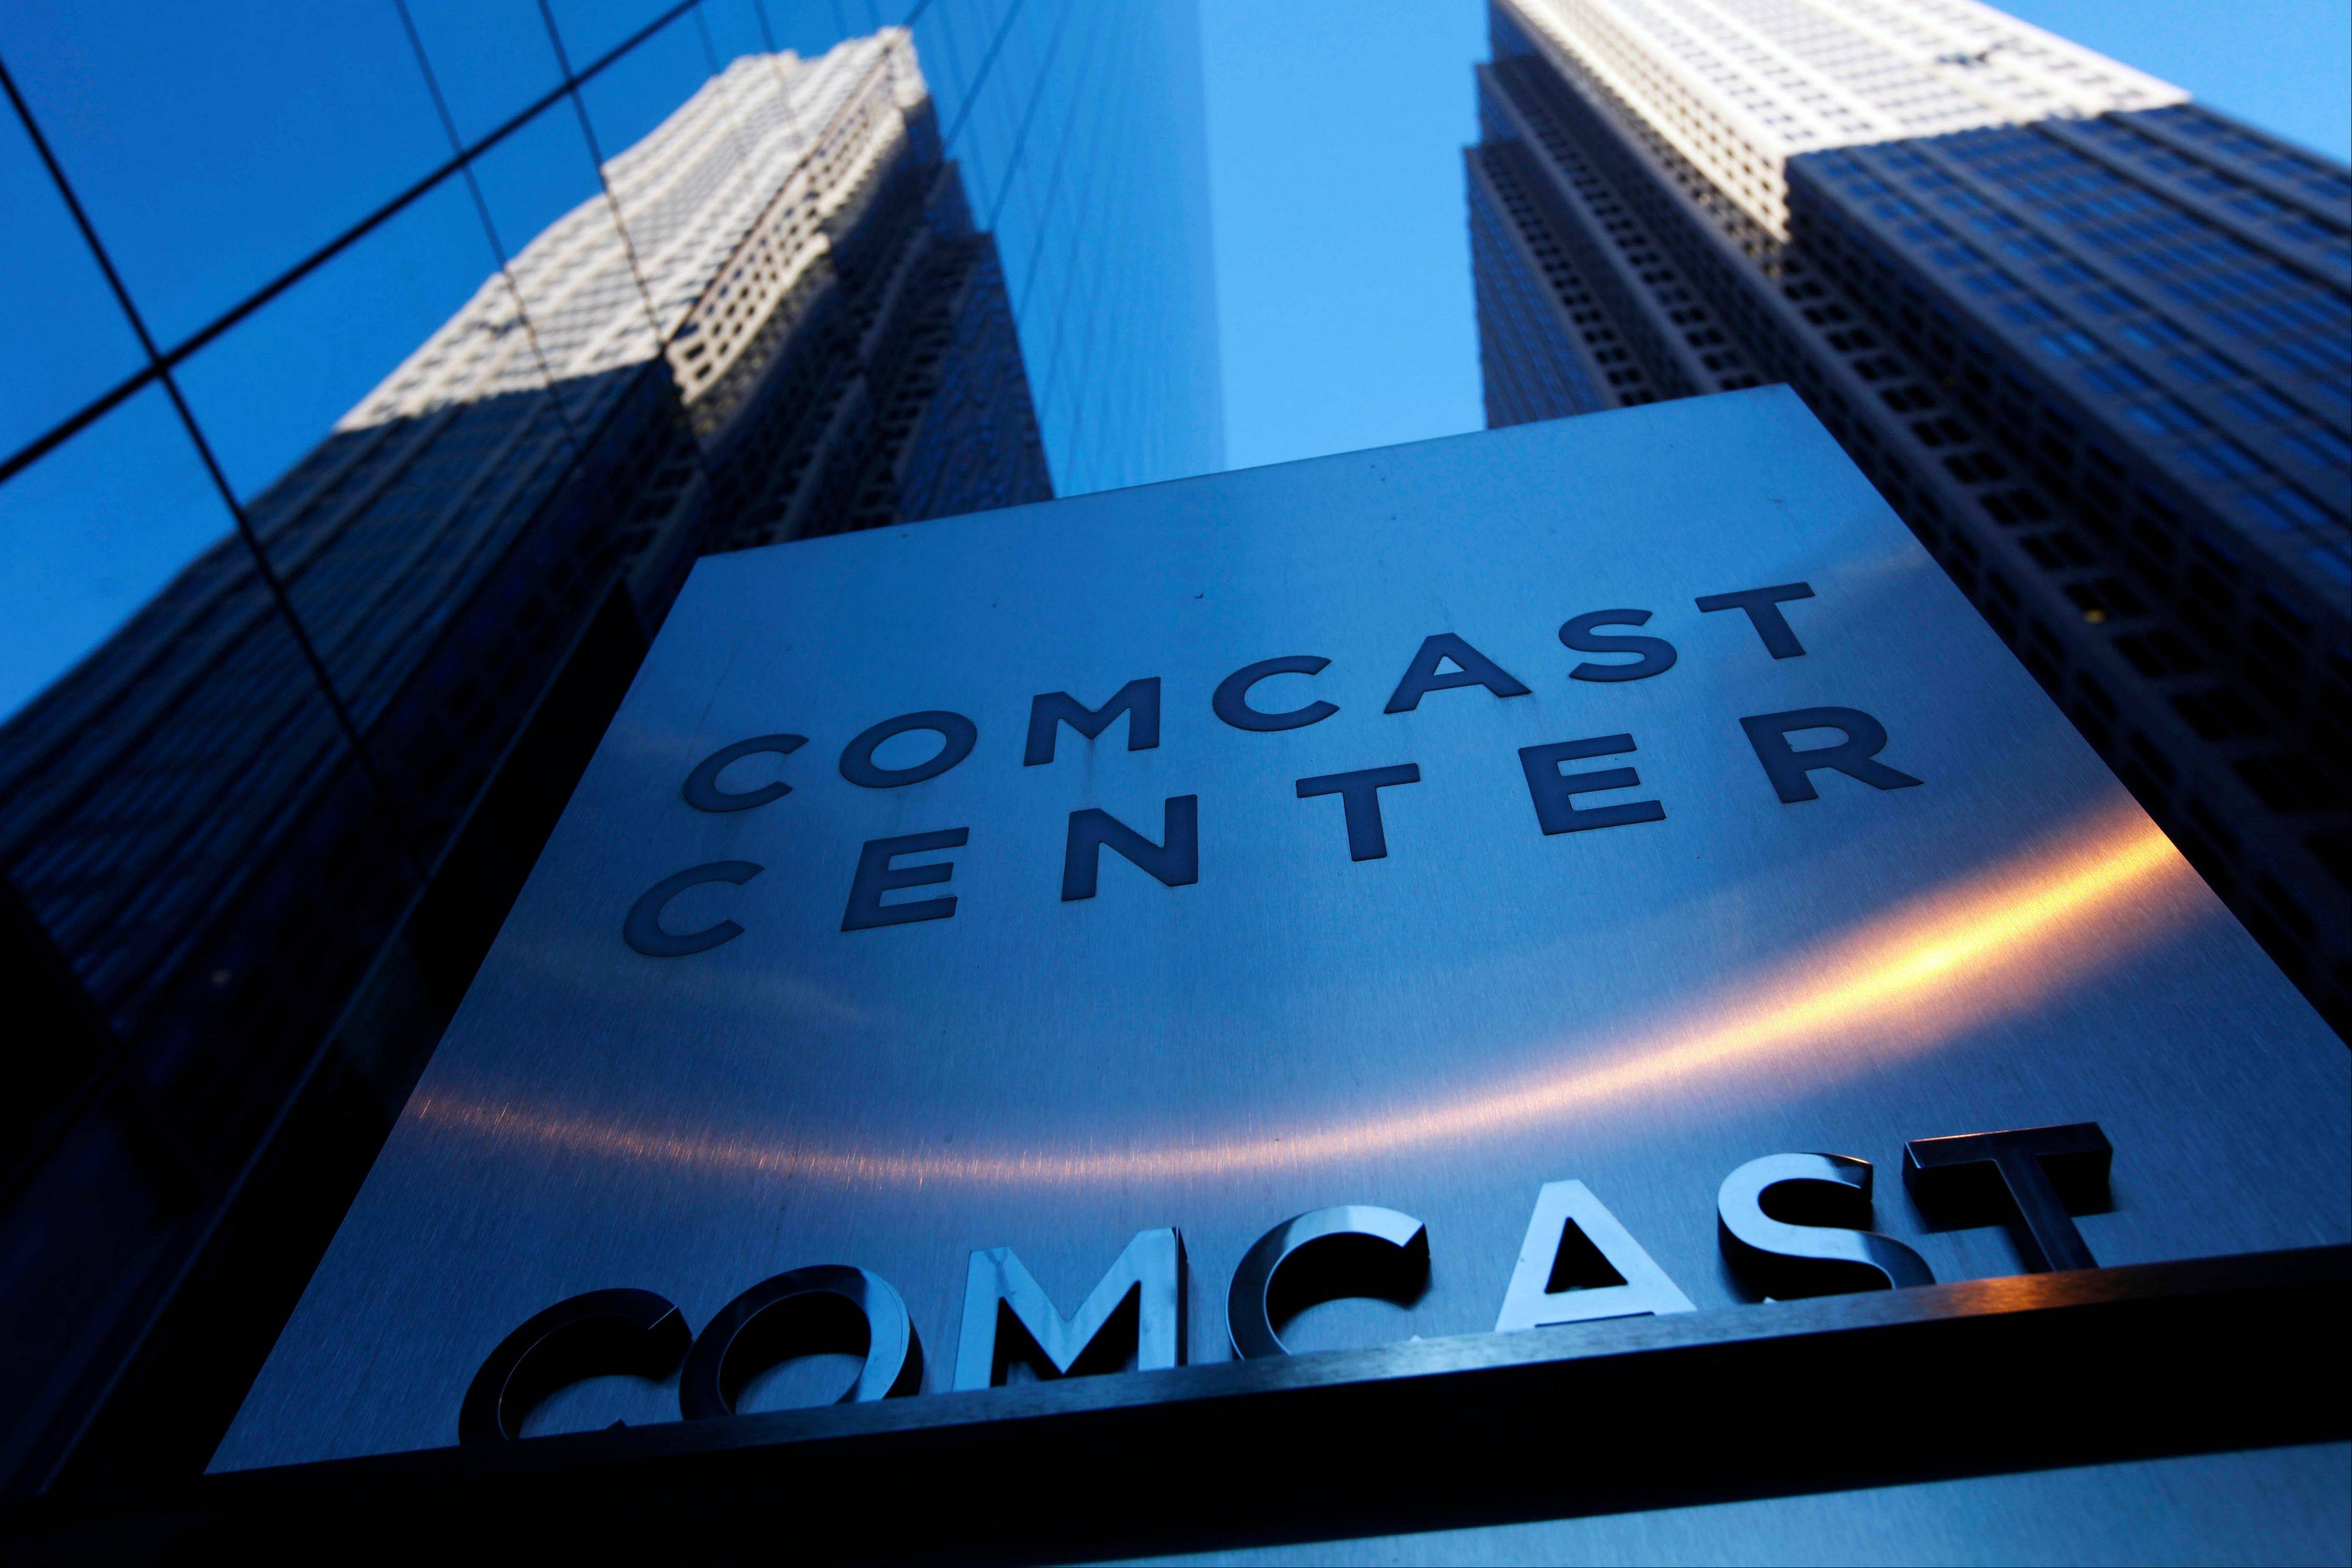 A sign outside the Comcast Center, left, in Philadelphia. On Tuesday a three-judge panel of the U.S. Court of Appeals for the D.C. Circuit affirmed that the FCC had authority to create open-access rules. But in a setback for the Obama administration's goal of Internet openness, the court ruled that the FCC failed to establish that its 2010 regulations don't overreach.